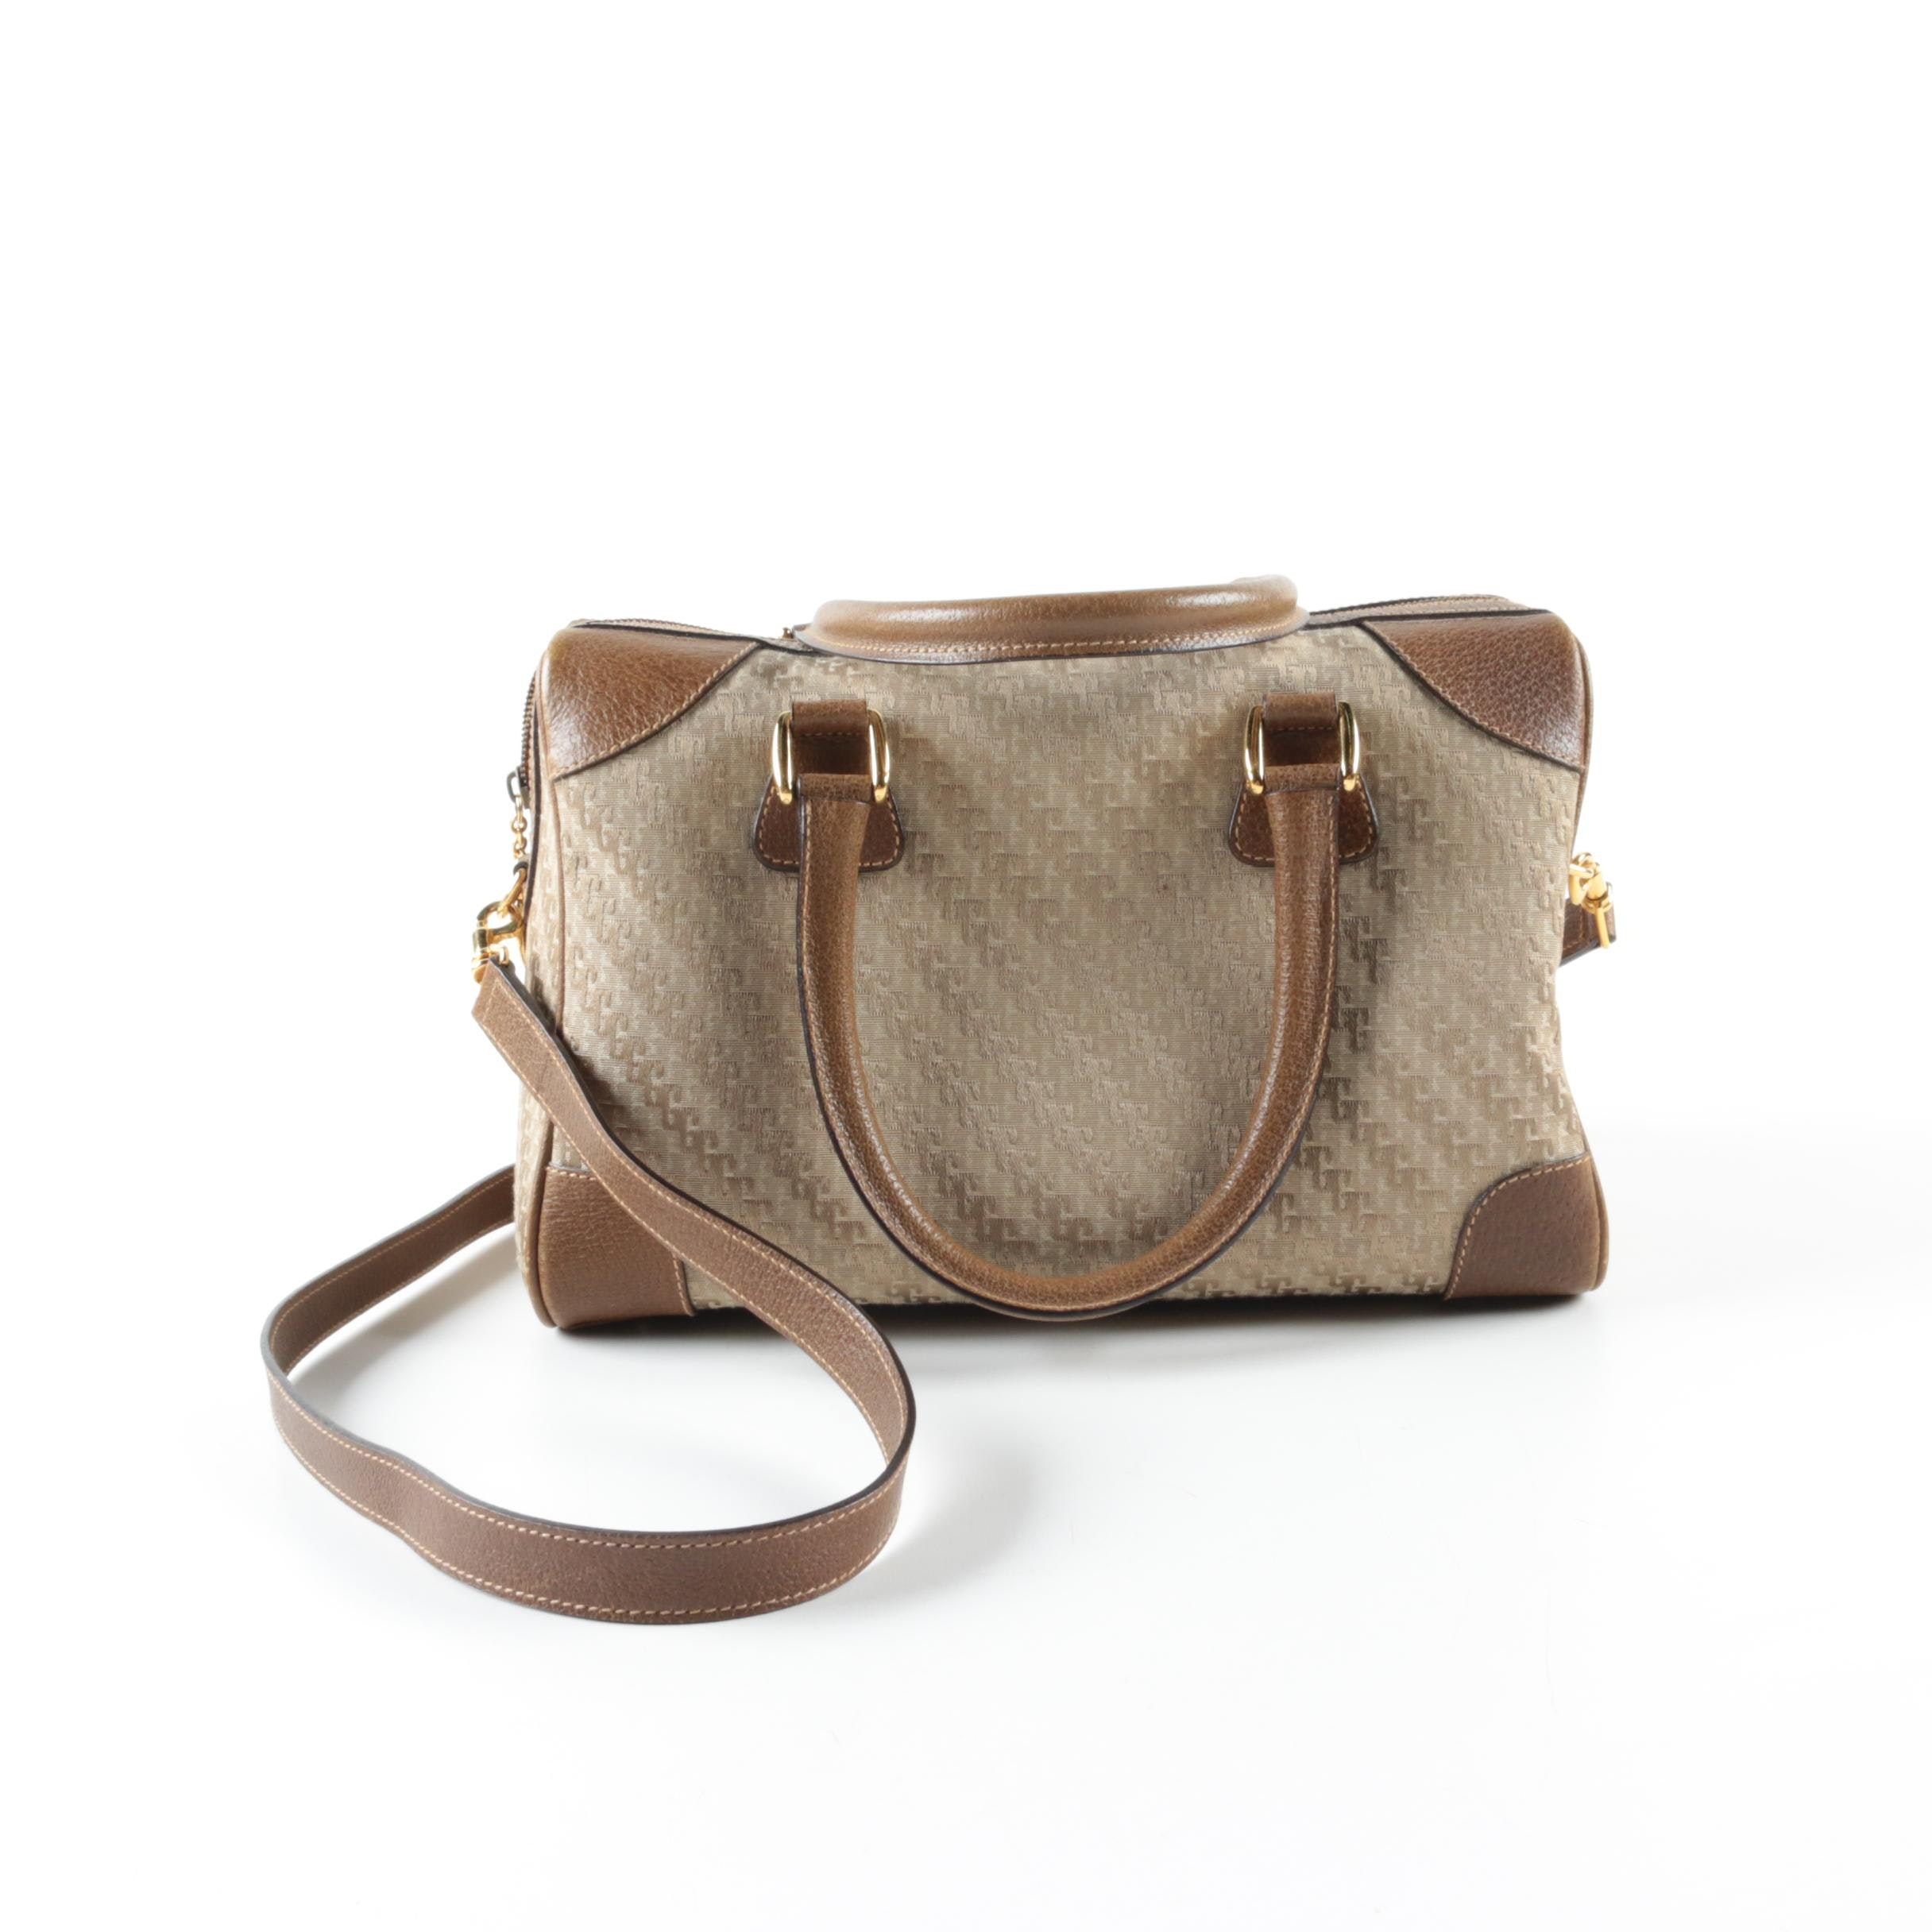 Gucci Taupe Canvas and Leather Handbag